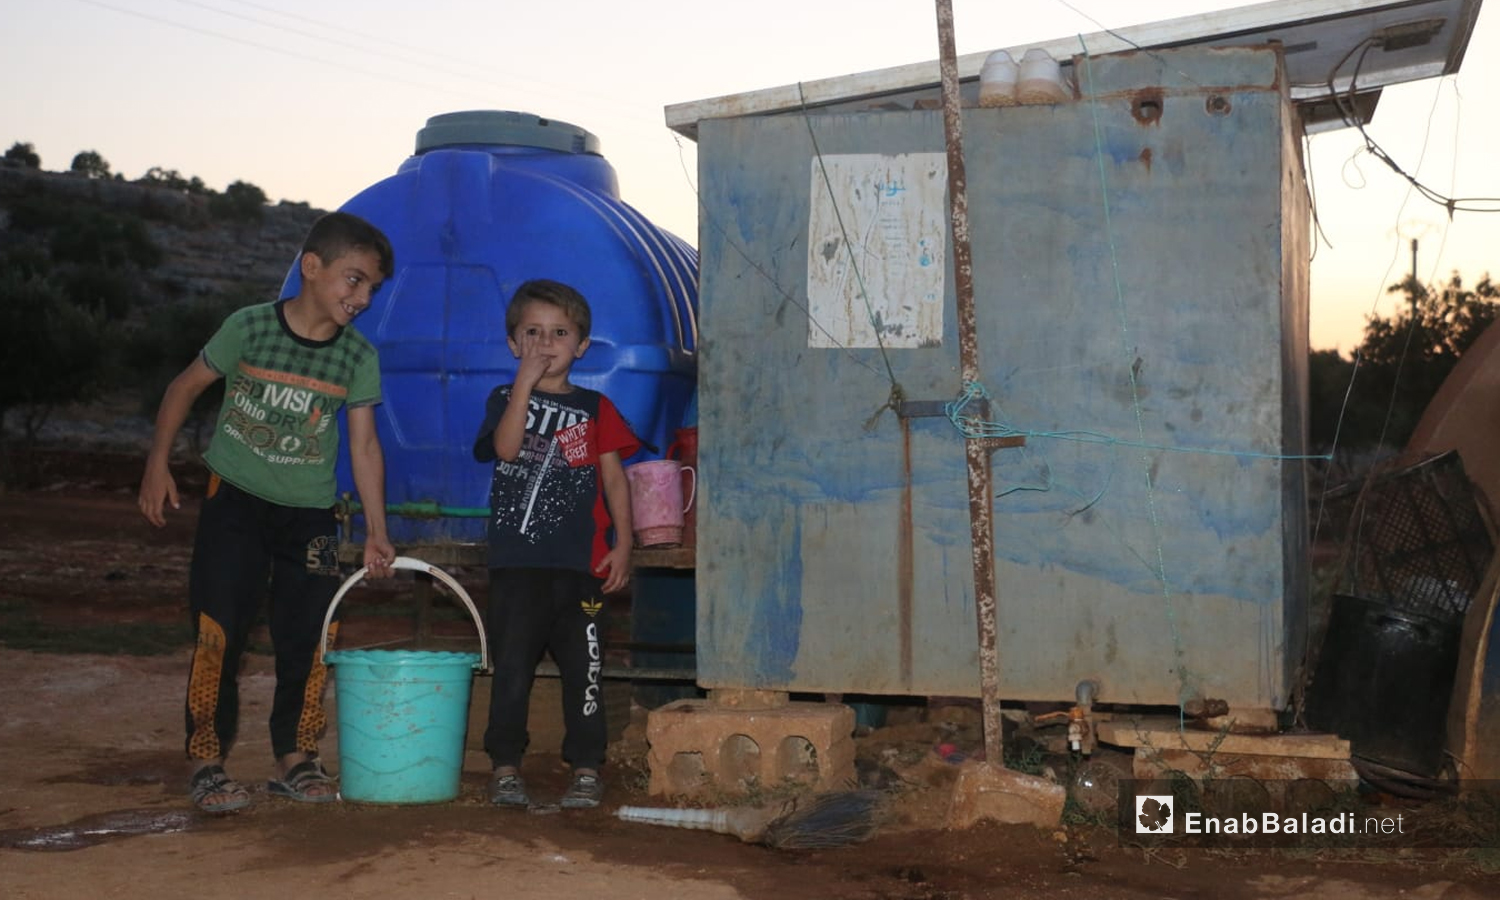 Syrian children near a water storage tank in a camp in the eastern countryside of Idlib- 21 June 2021 (Enab Baladi)